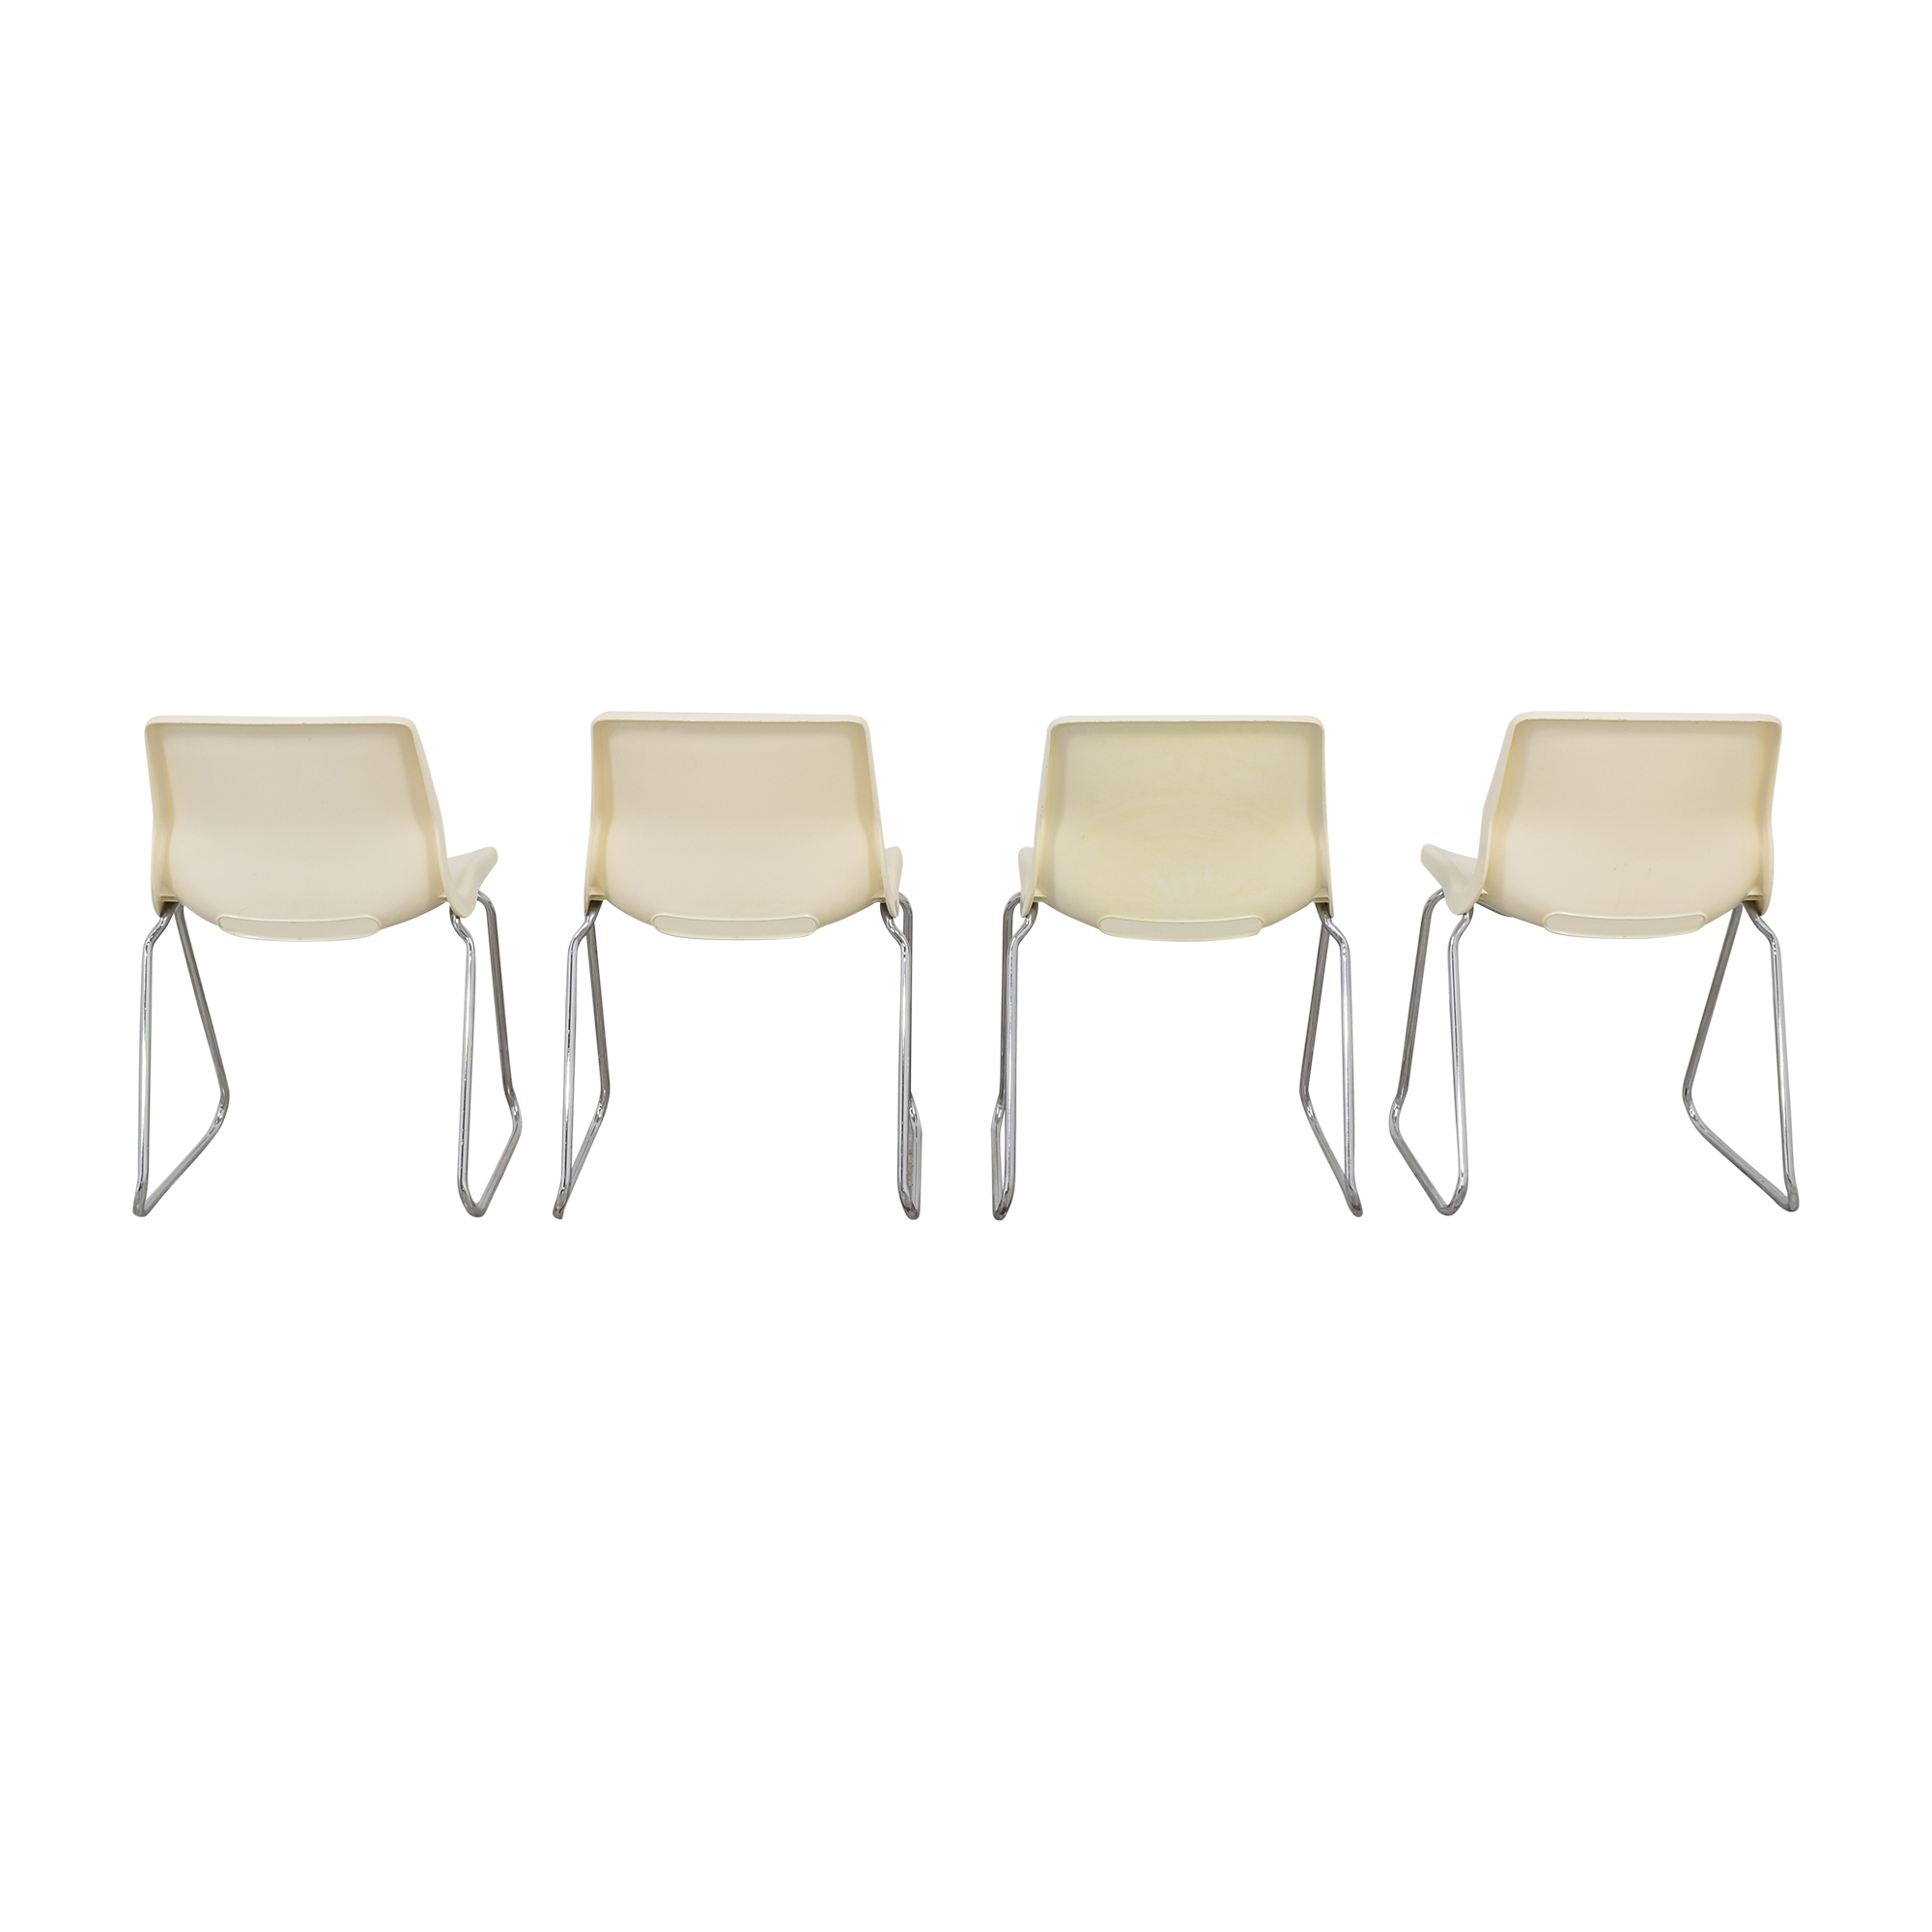 Overman by Svante Schoblom Swedish Stacking Dining Chairs Overman